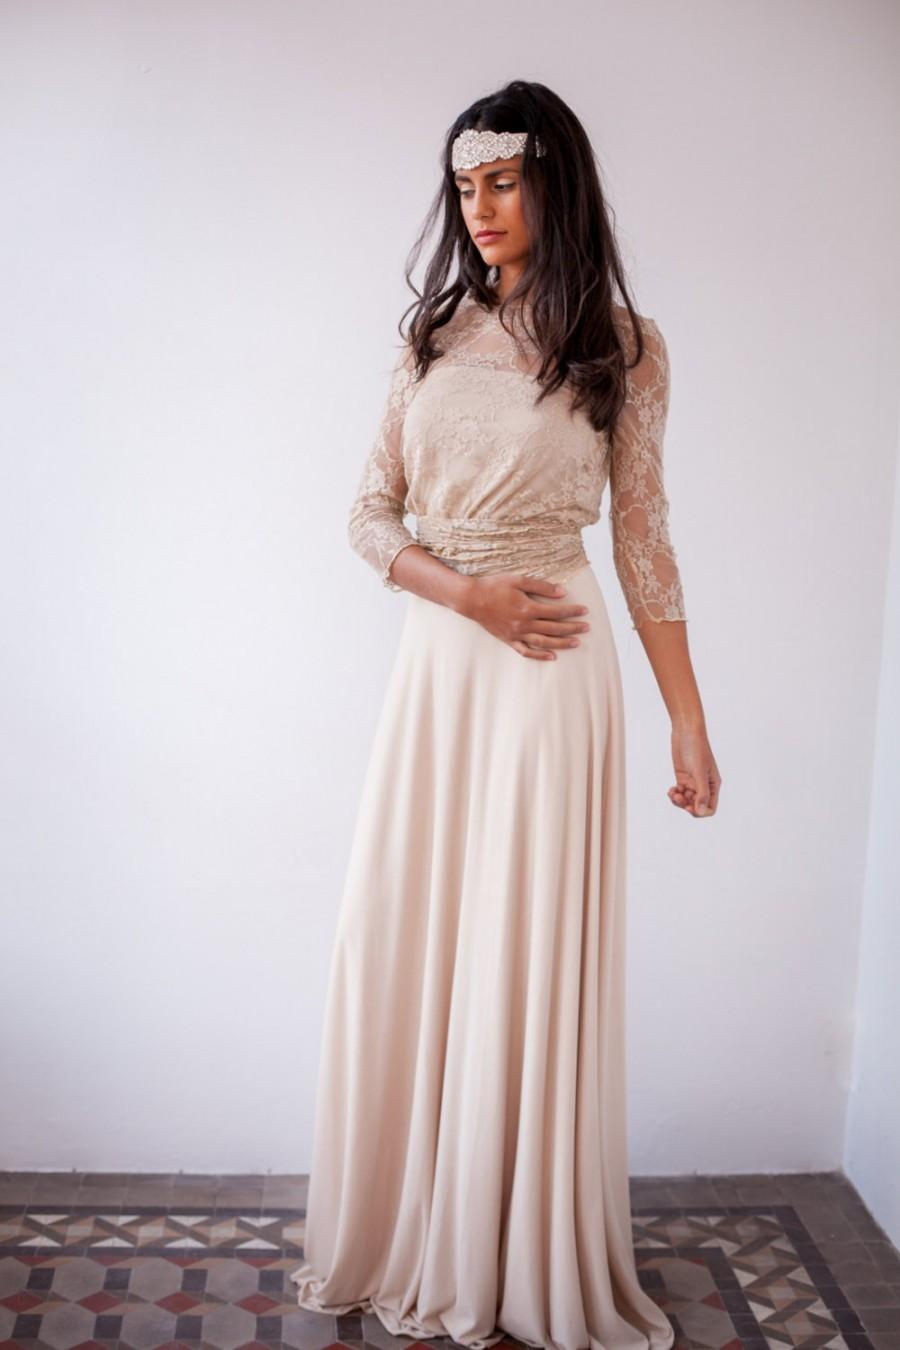 boho wedding dress nude wedding dress Wedding Dress Nude Champagne Peach Ivory Bridal Dress Two Piece Dress Long Sleeves Dress Melanie